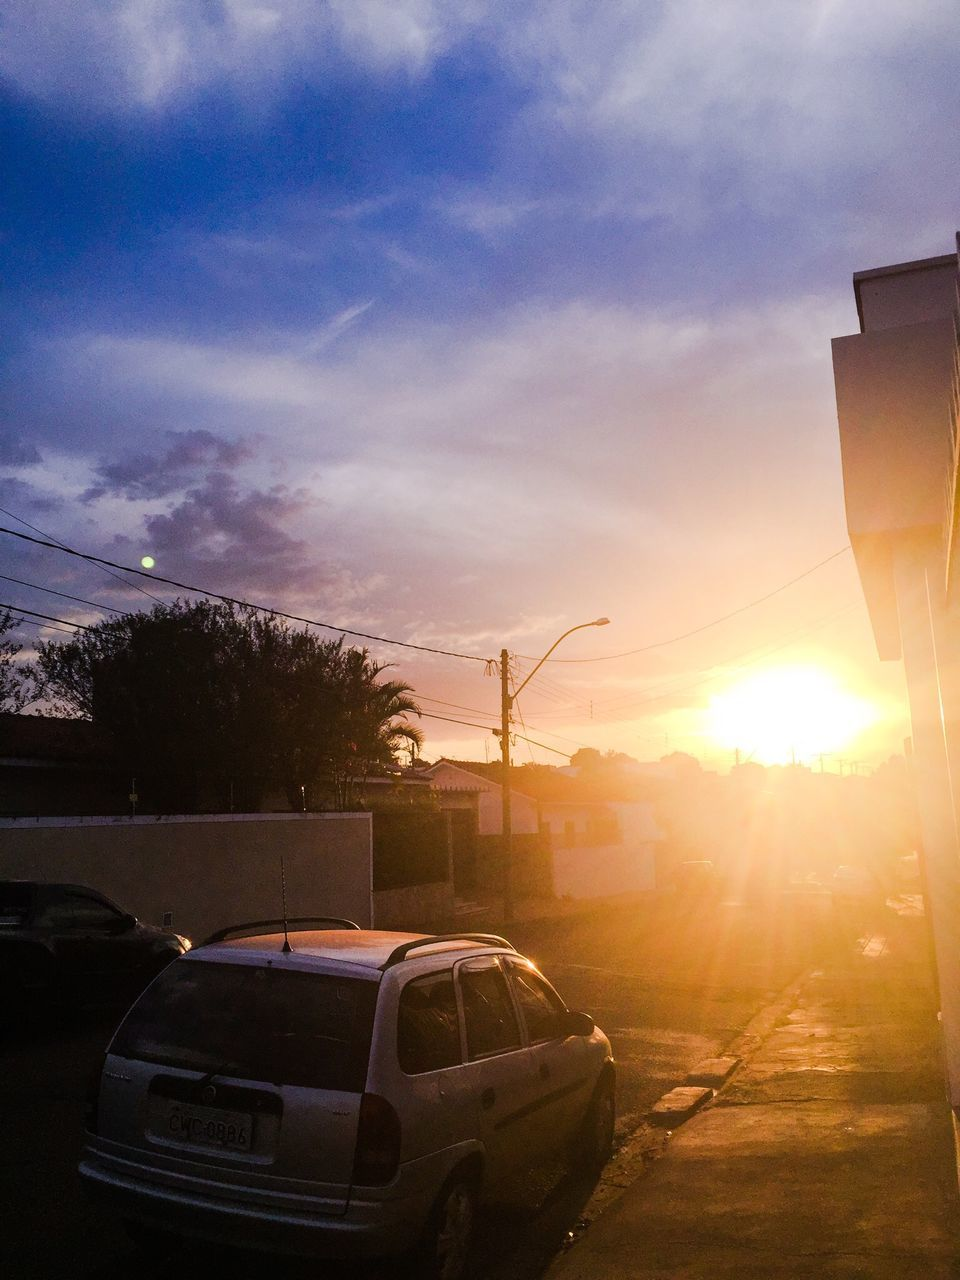 car, sunset, transportation, sky, land vehicle, cloud - sky, no people, mode of transport, built structure, building exterior, architecture, sunlight, road, outdoors, city, day